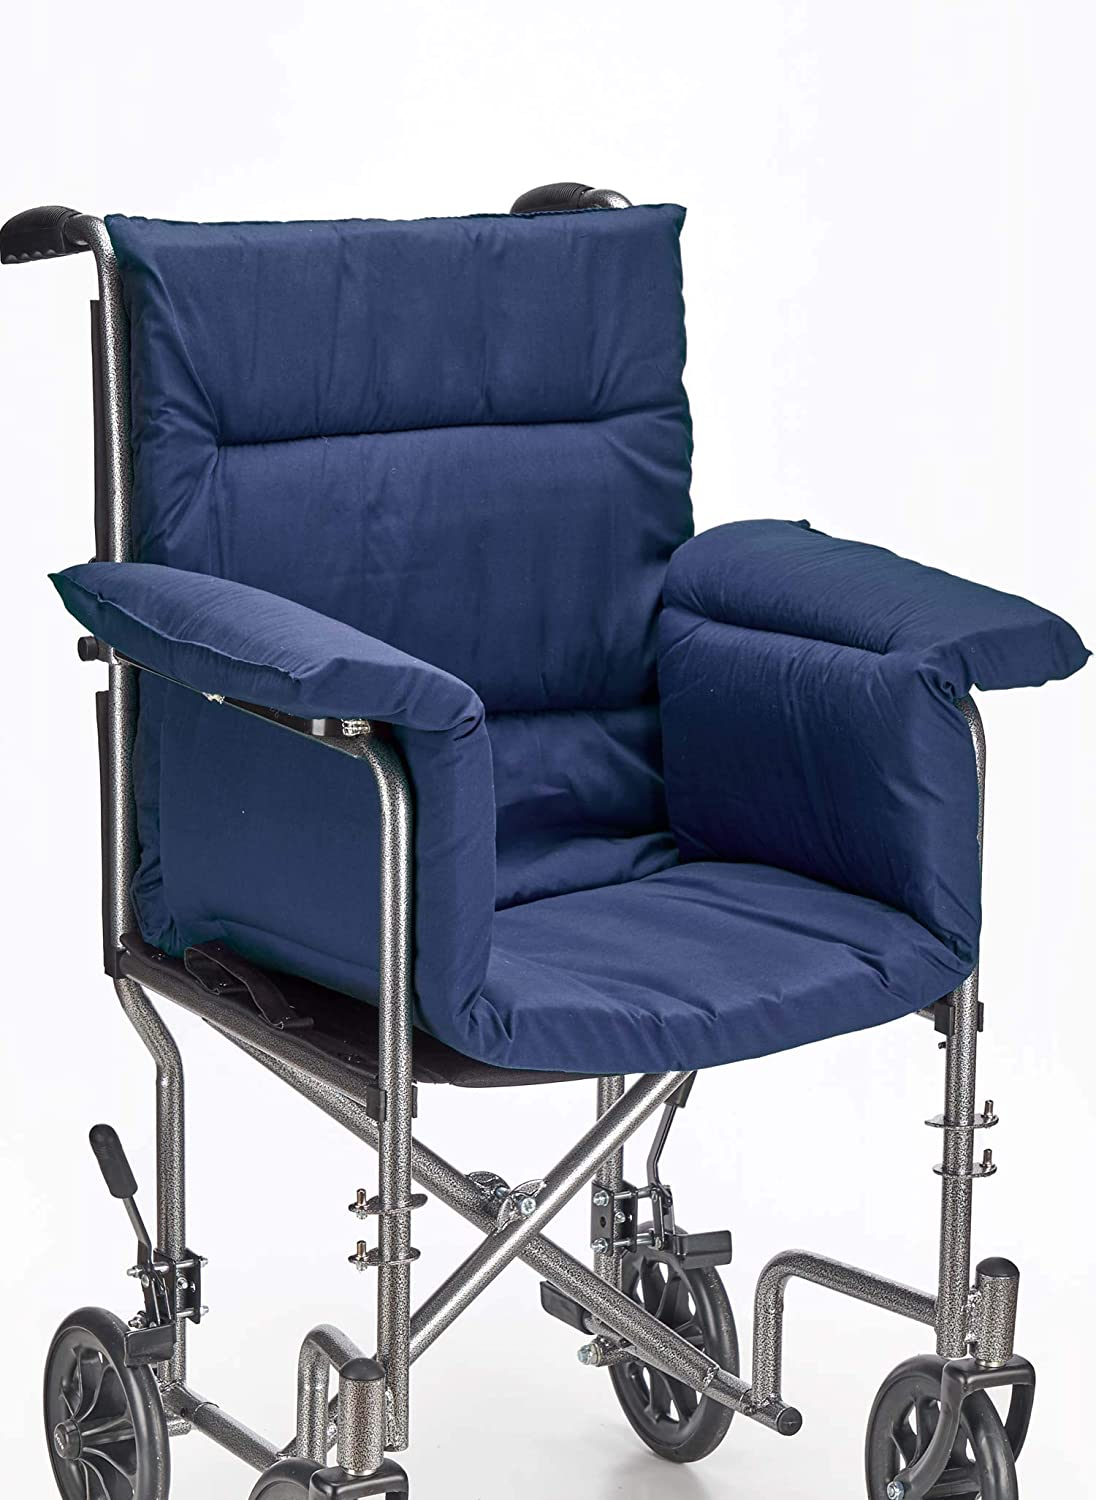 AmeriMark Chair Cushion Pad Seat Cover for Wheelchair, Transport Chair or Electric Scooter Navy One Size